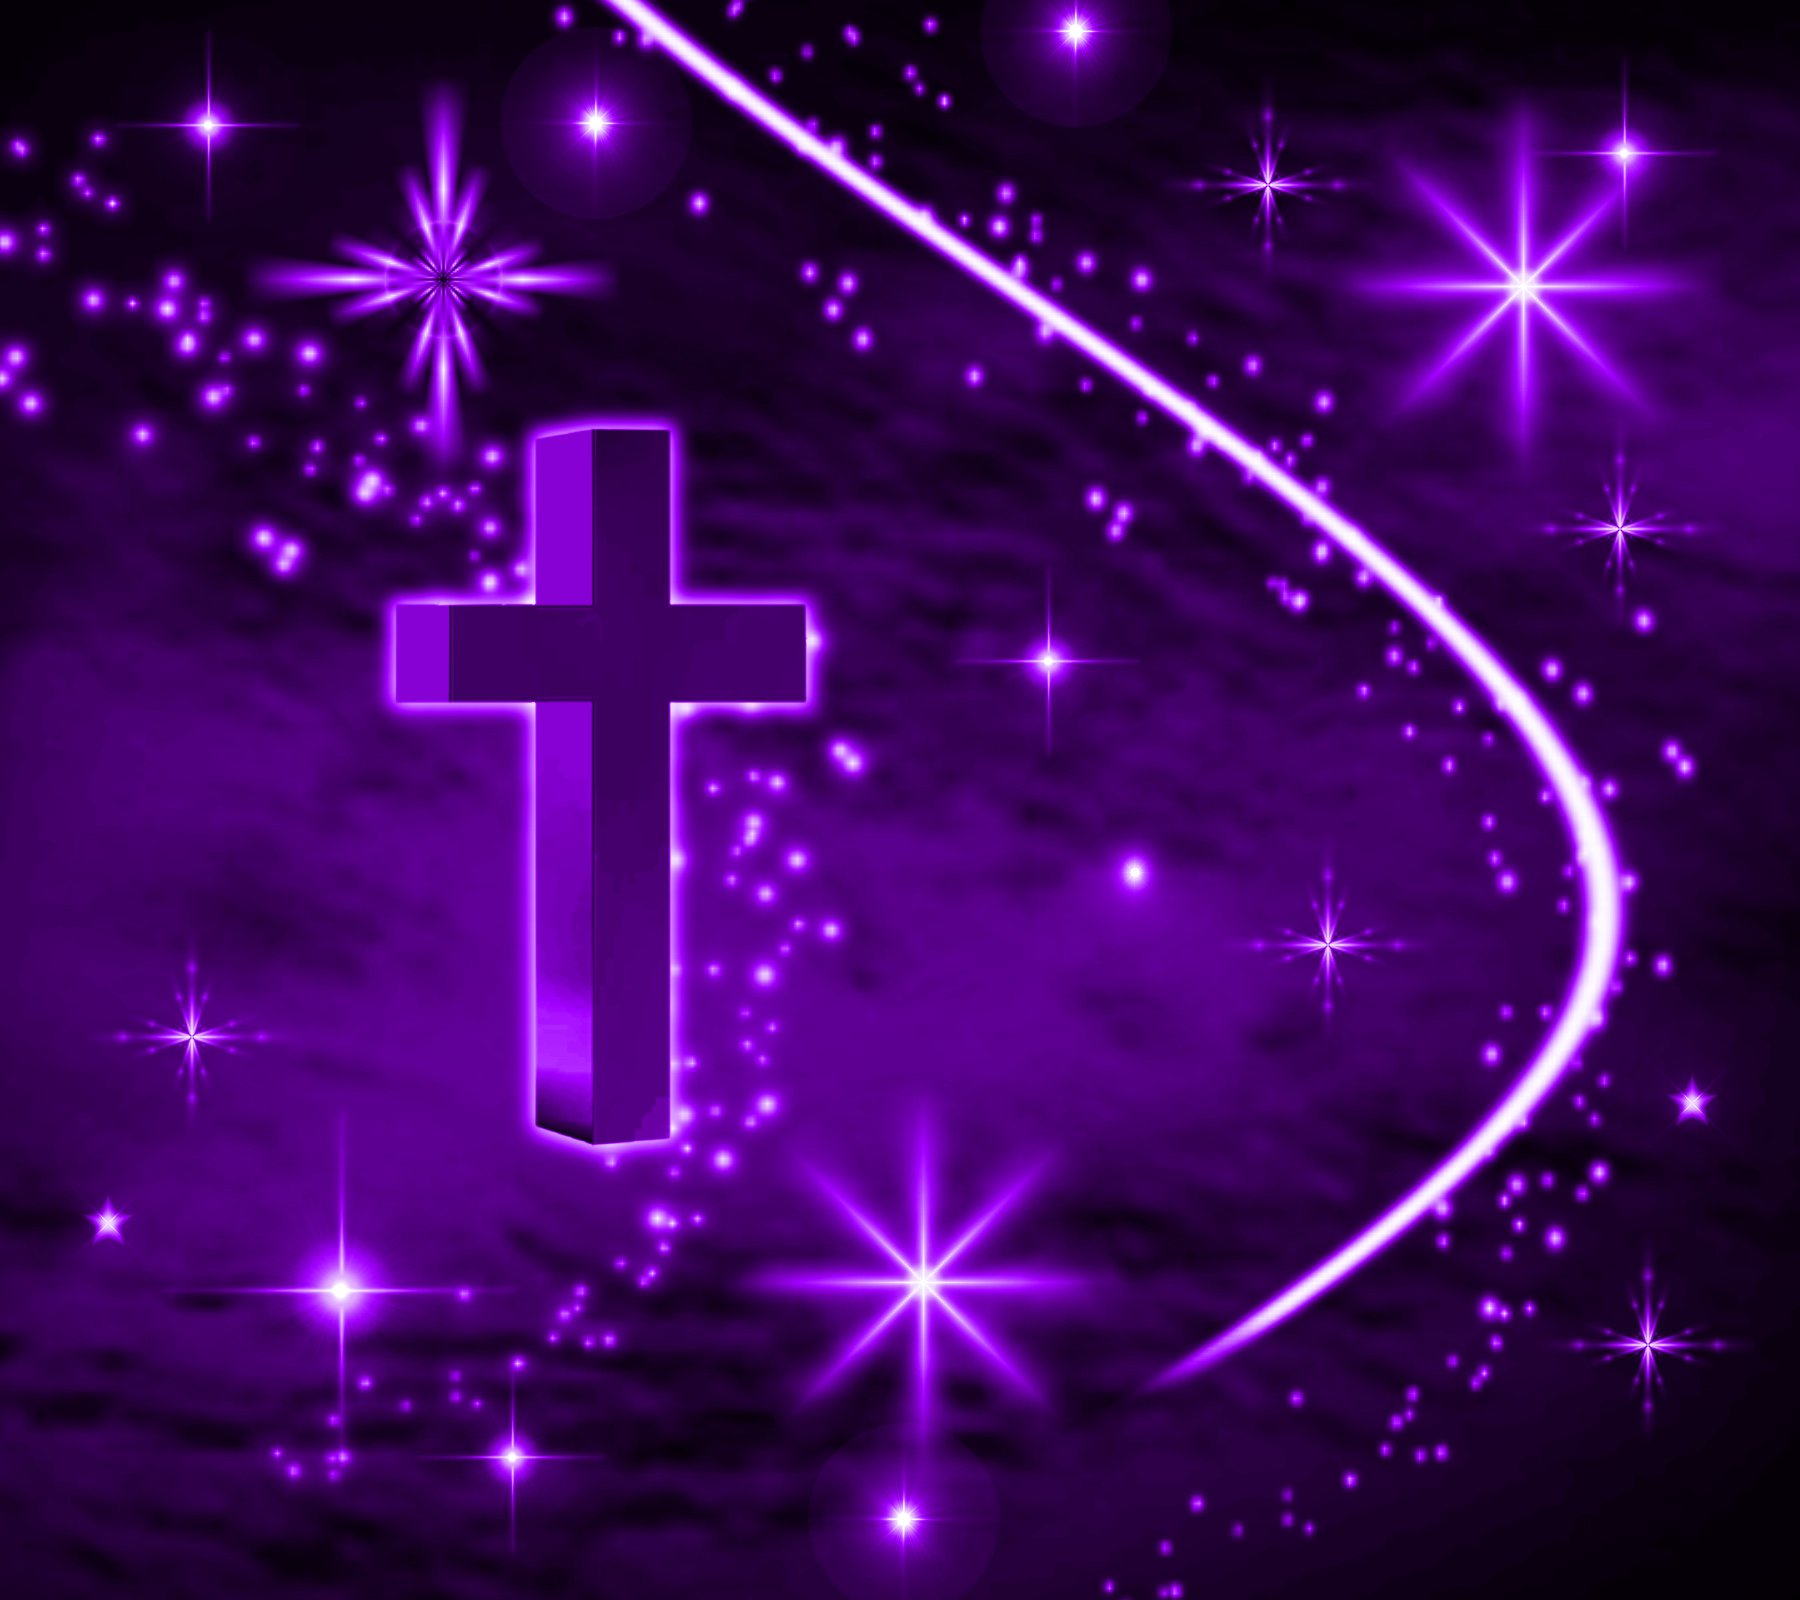 Background Wallpaper Image  Purple Cross With Stars Background    Purple Hearts And Stars Background